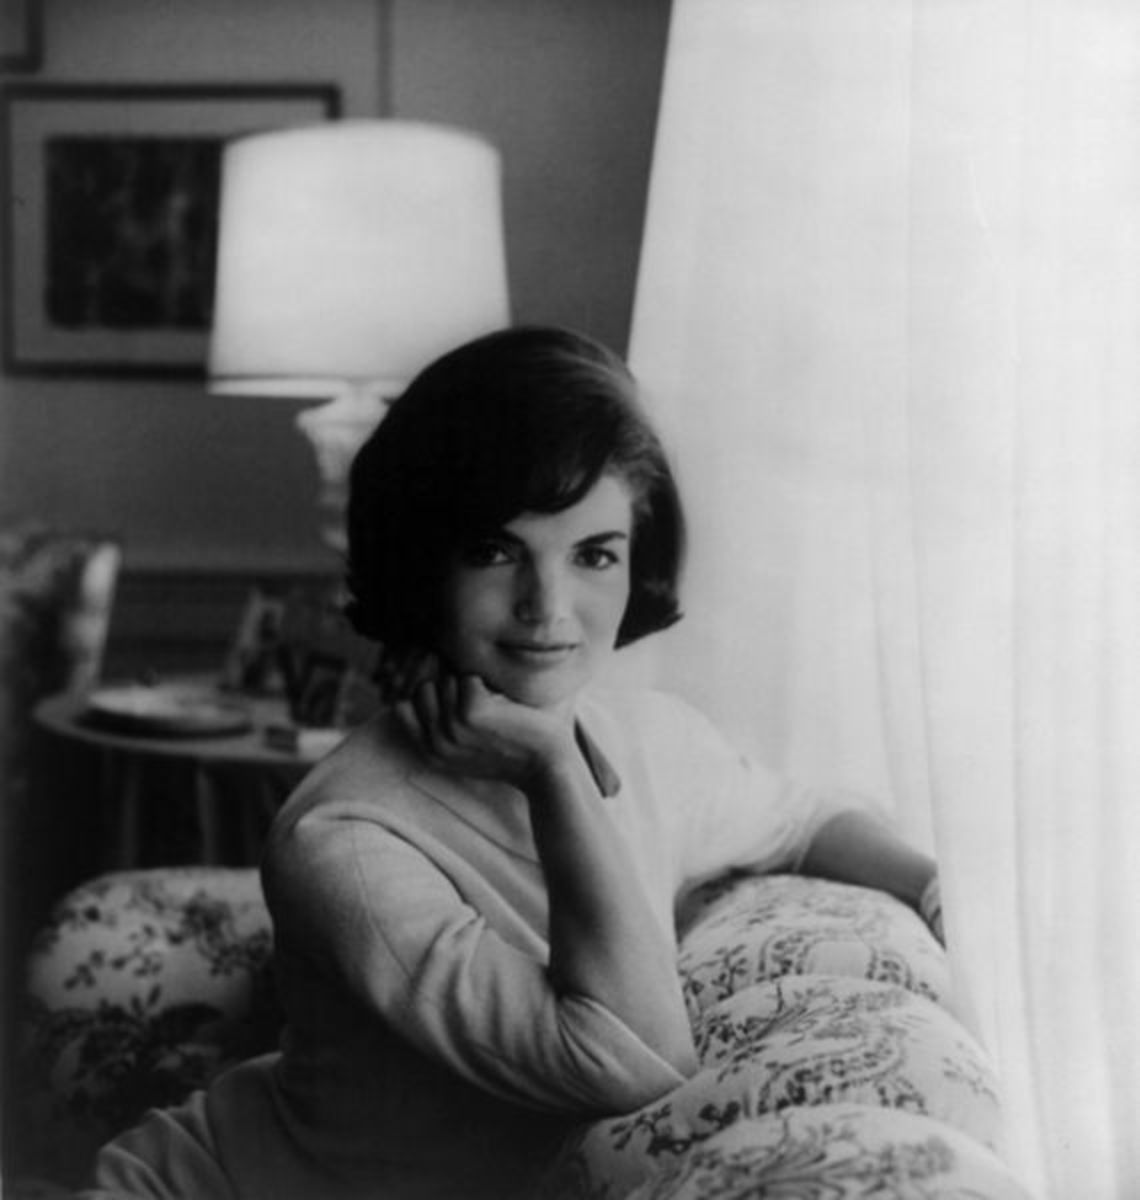 Five Interesting Facts About Jacqueline Kennedy Onassis That You Probably Didn't Know